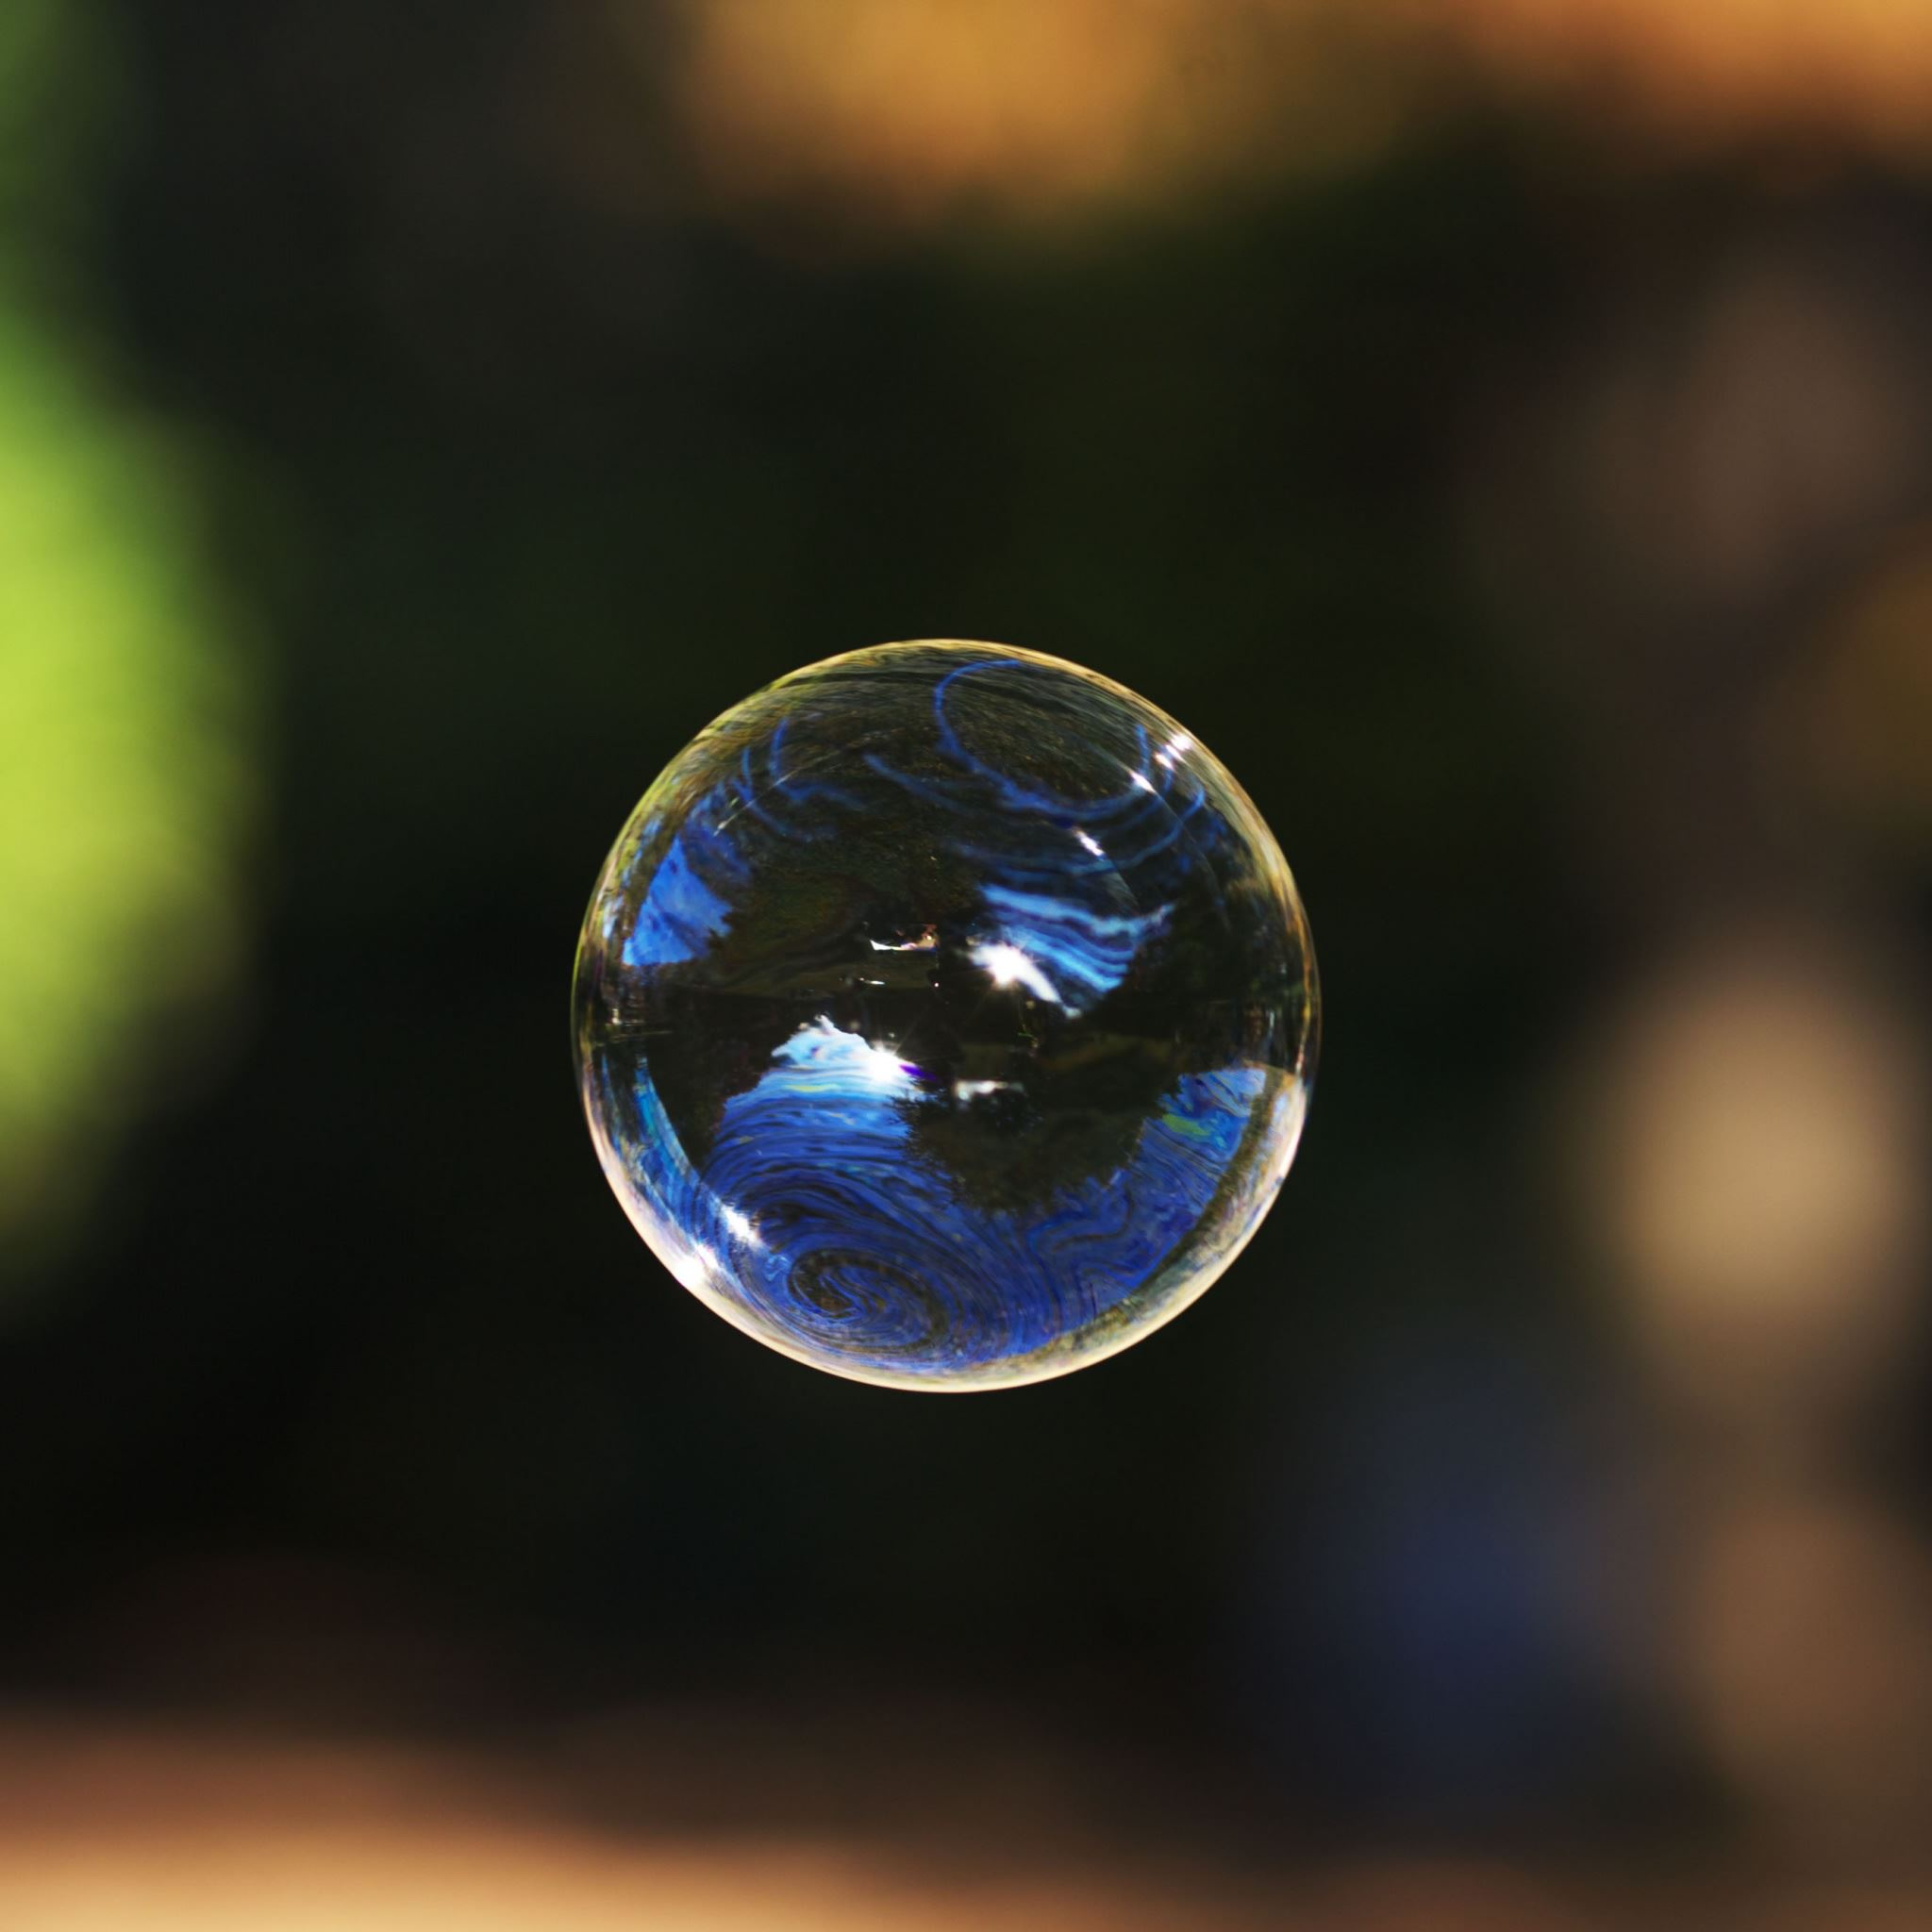 Soap Bubble Ipad Air Wallpapers Free Download